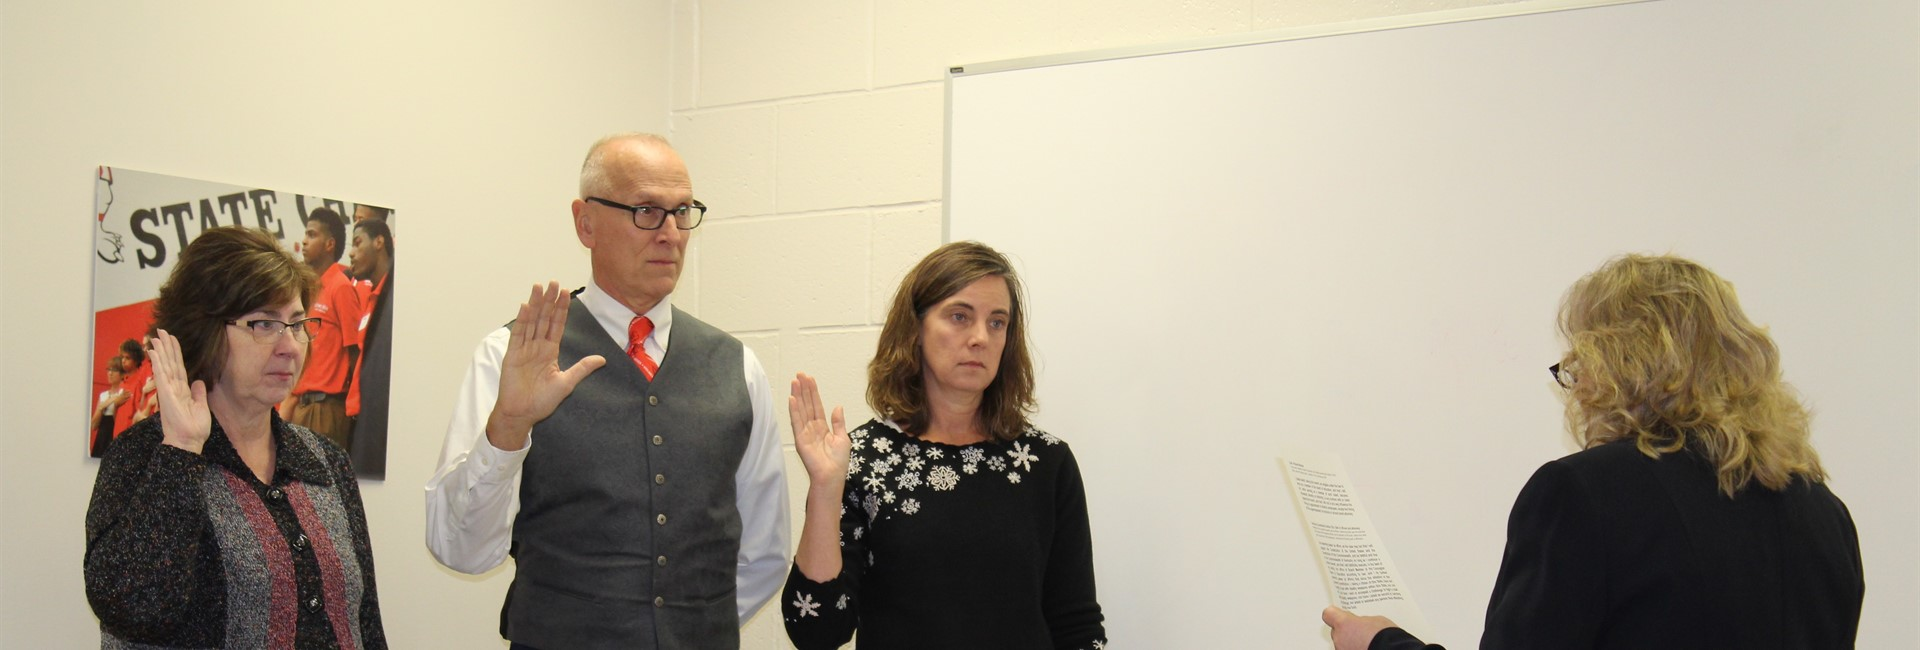 New school board members, Glenda Huff, Tom Wherry, and April Brockhoff are sworn into office.